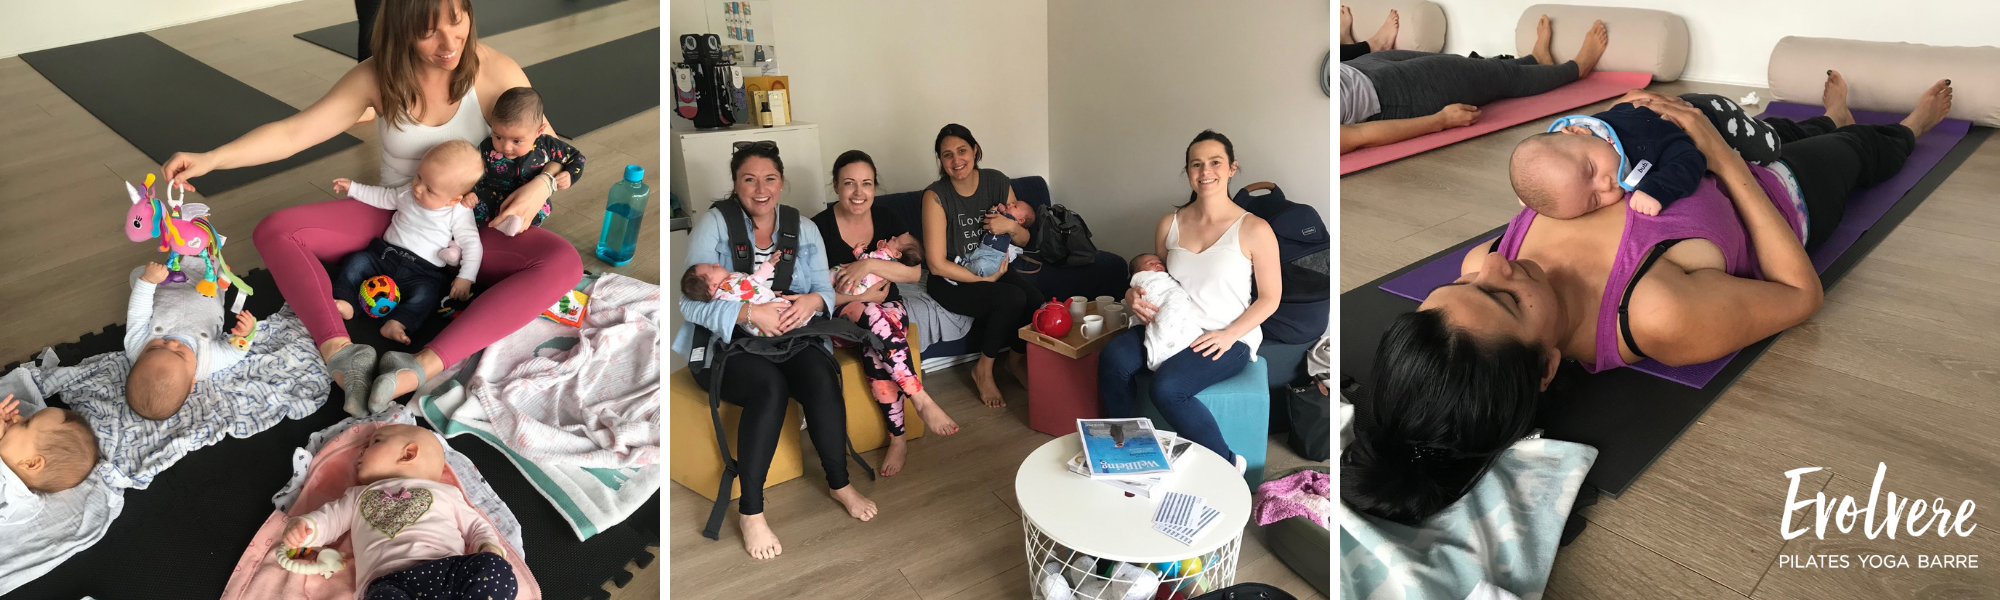 Mothers Village in Lane Cove to connect and feel supported